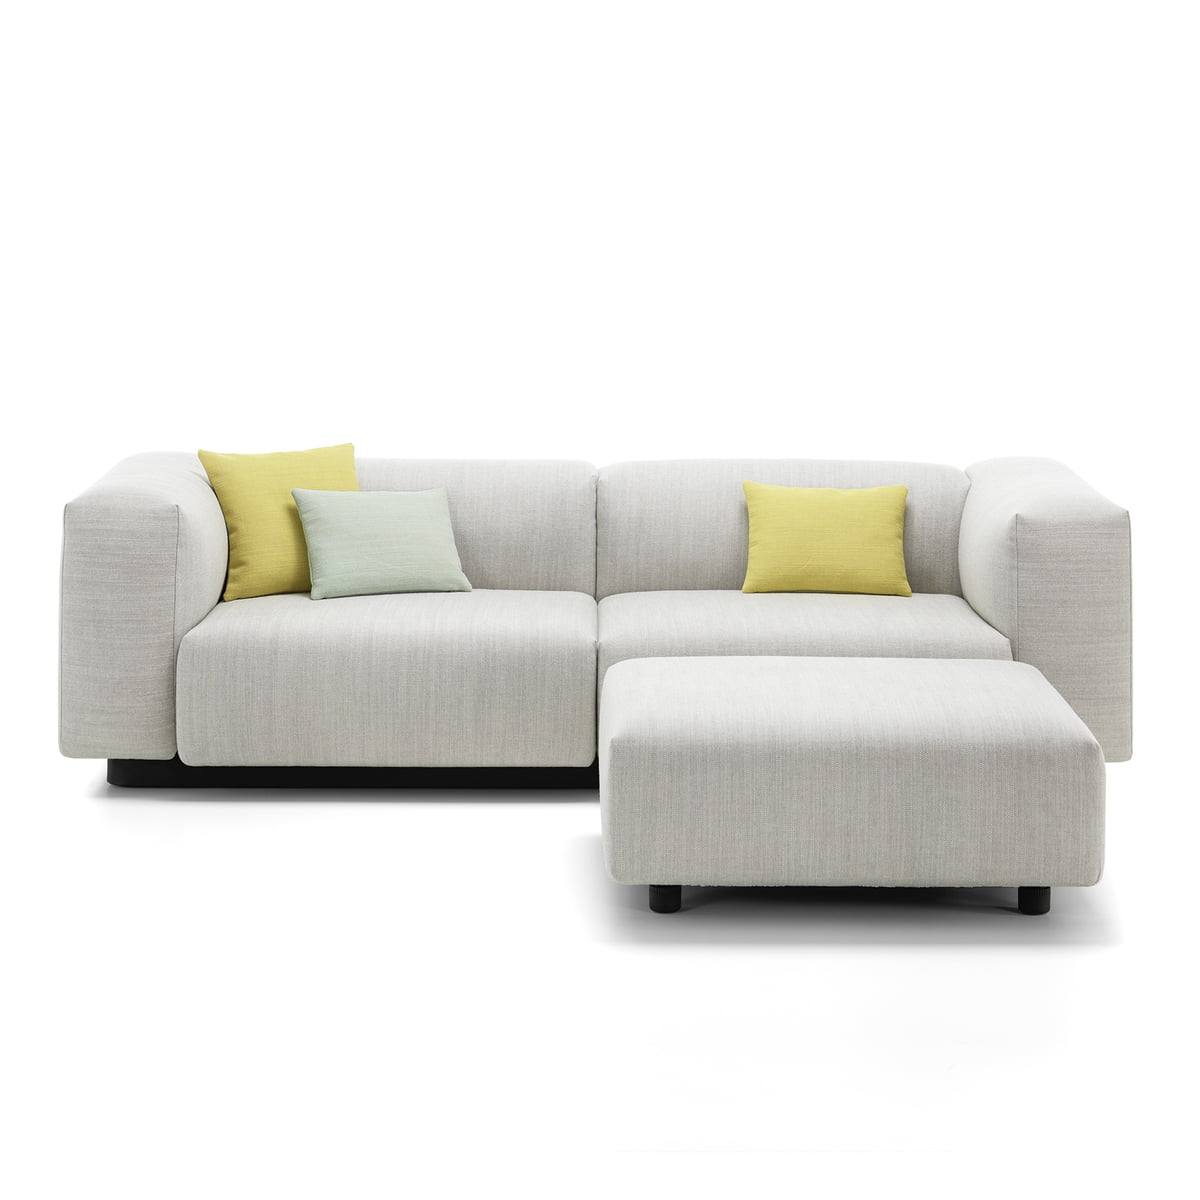 2 seater sofa with chaise furniture sofa sectionals chaise for 2 seater chaise sofa